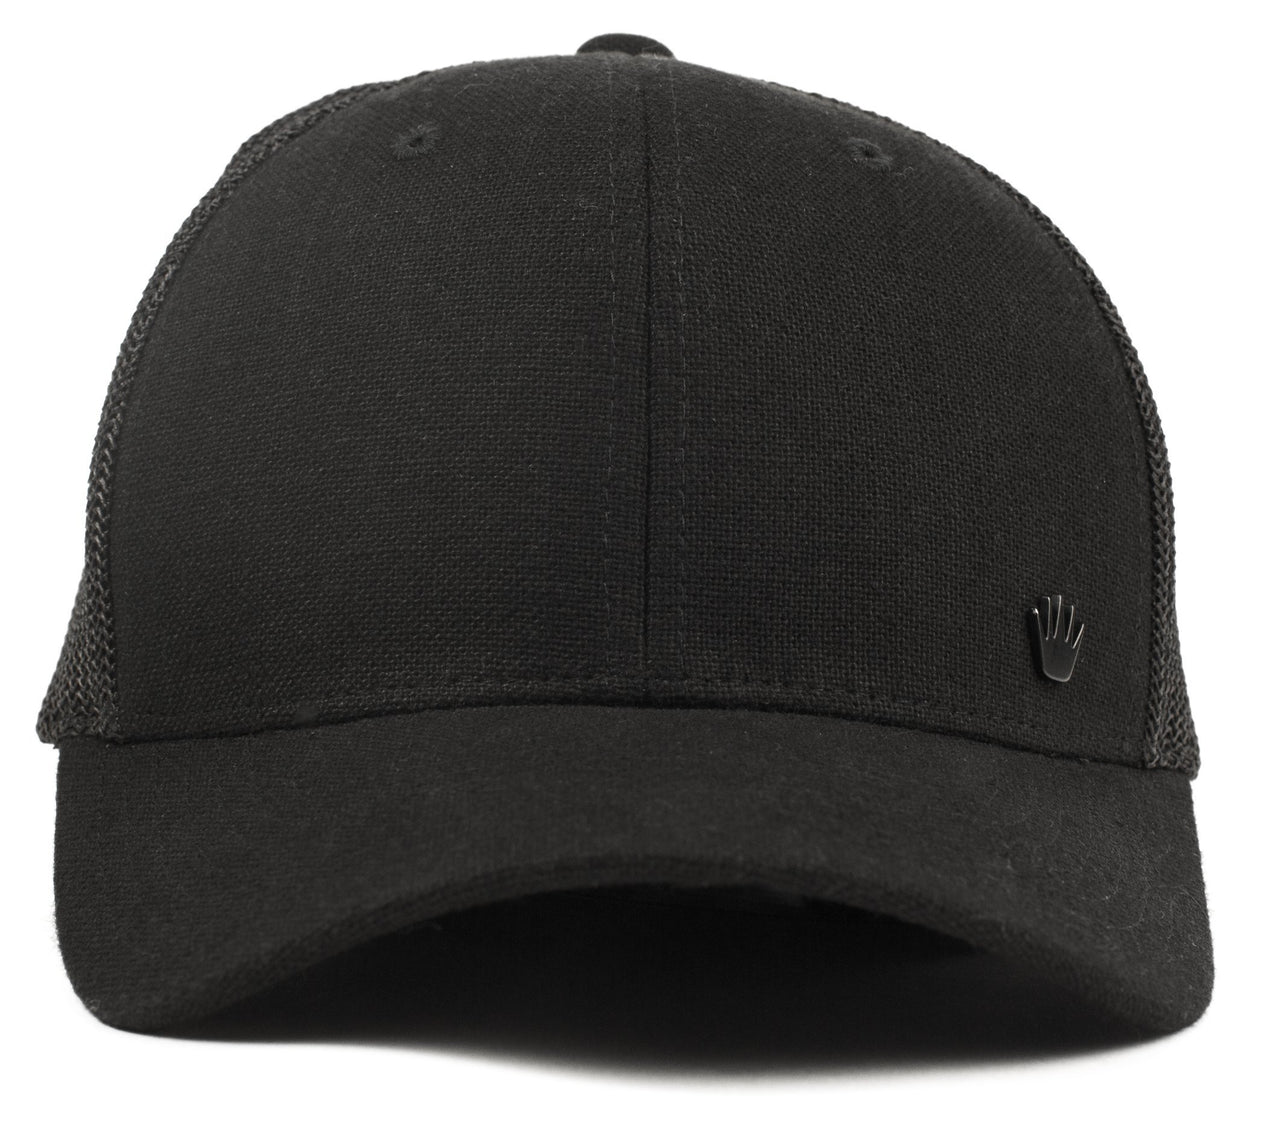 No Bad Ideas Flexfit Cap Walton Mesh (Black/Black)